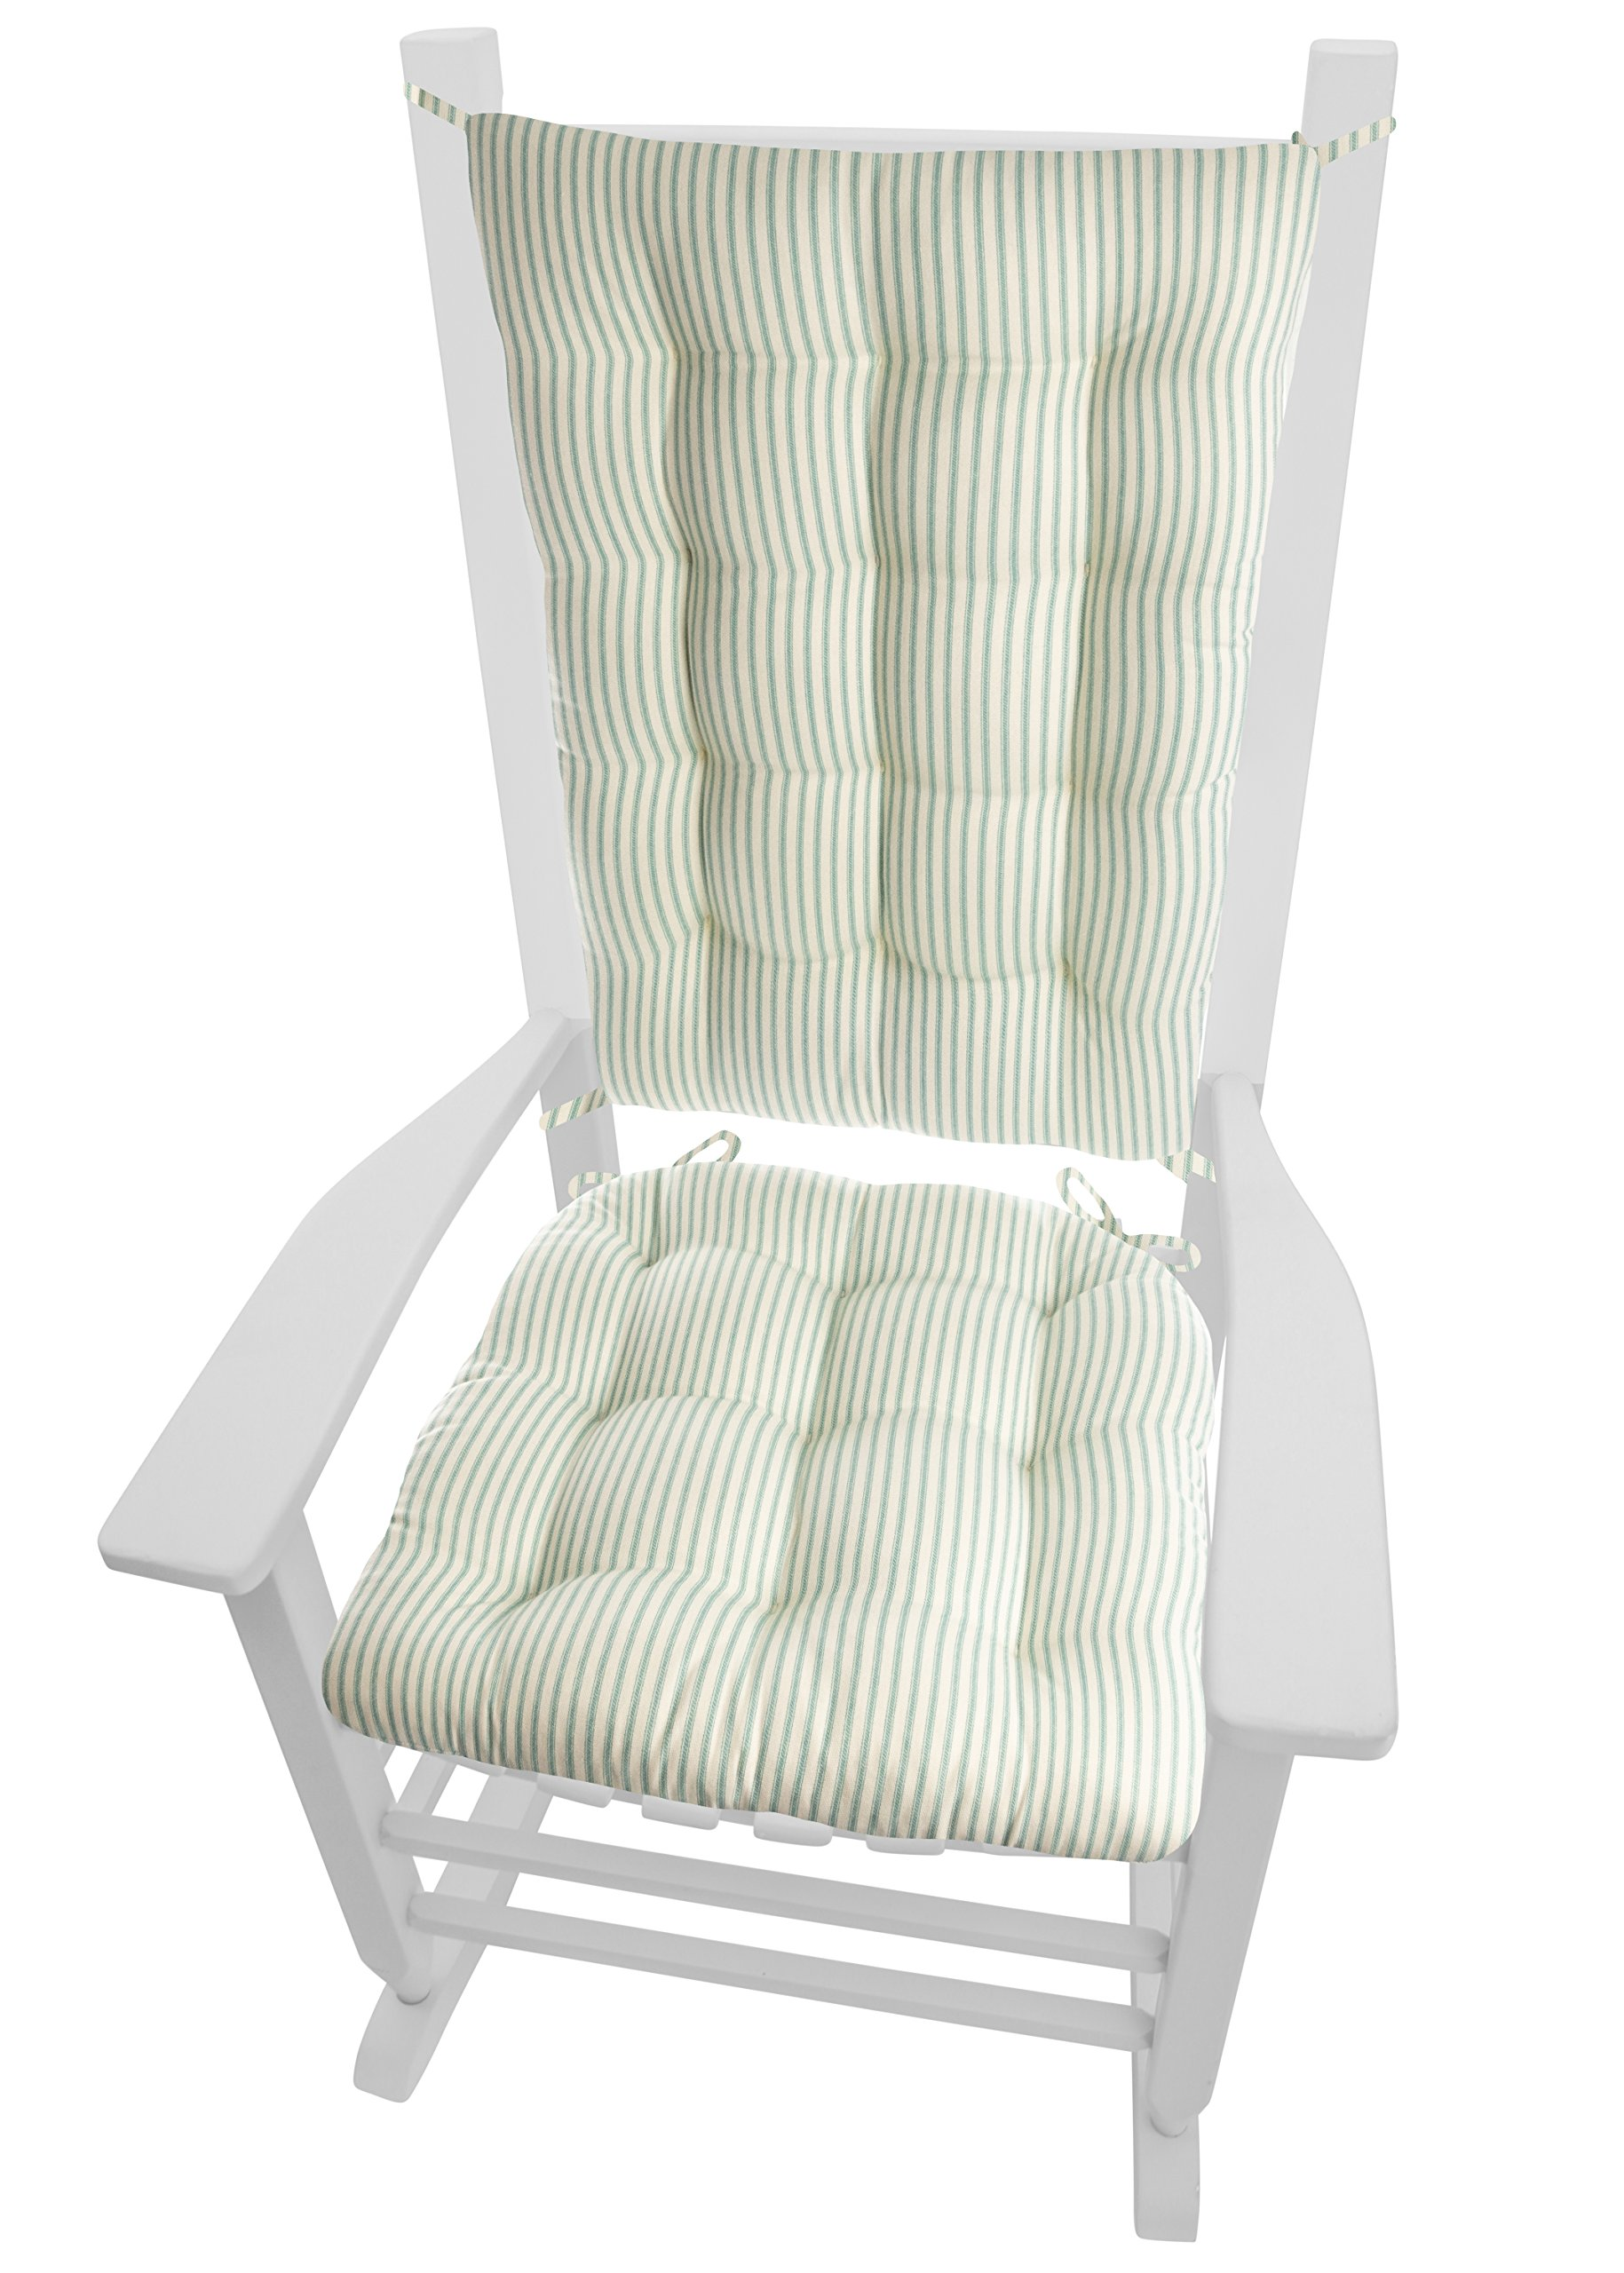 Barnett Home Decor Ticking Stripe Aqua Rocking Chair Cushions - Extra-Large - Seat Pad and Back Rest with Ties - Reversible, Latex Foam Fill - Made in USA (XL/Teal)